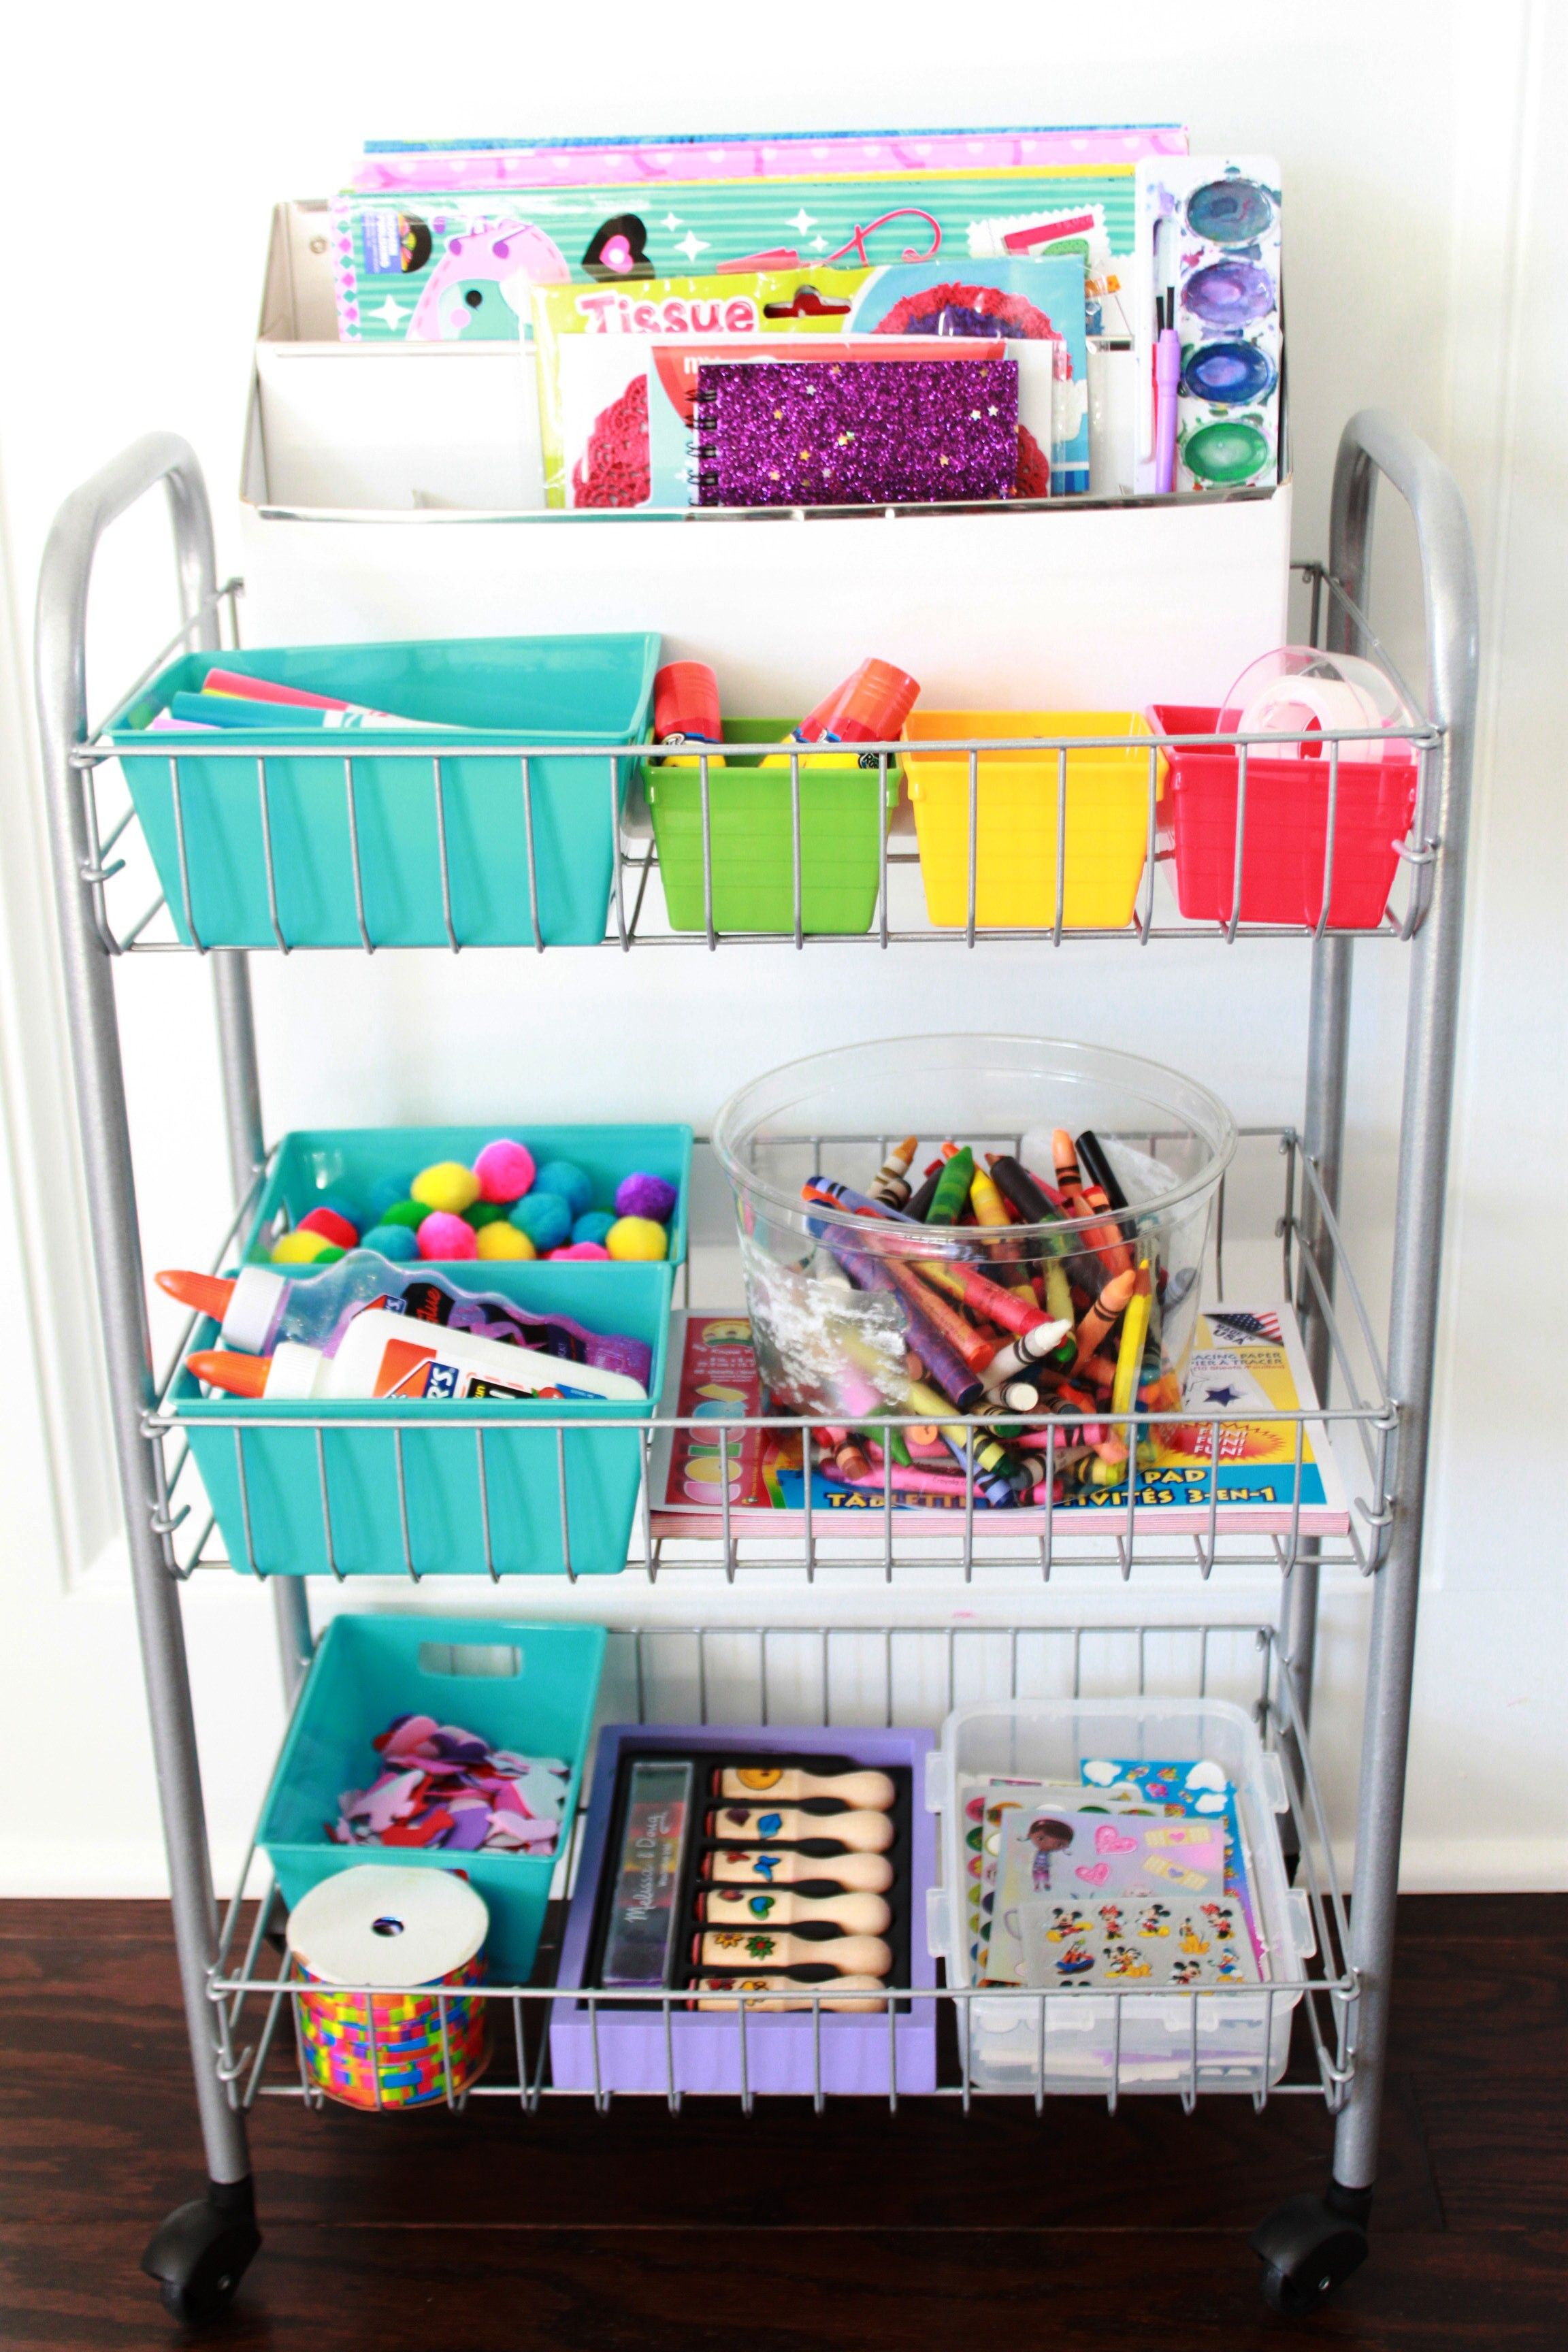 solution to blake getting into all n 39 s art supplies and decorating himself kid stuff kids. Black Bedroom Furniture Sets. Home Design Ideas